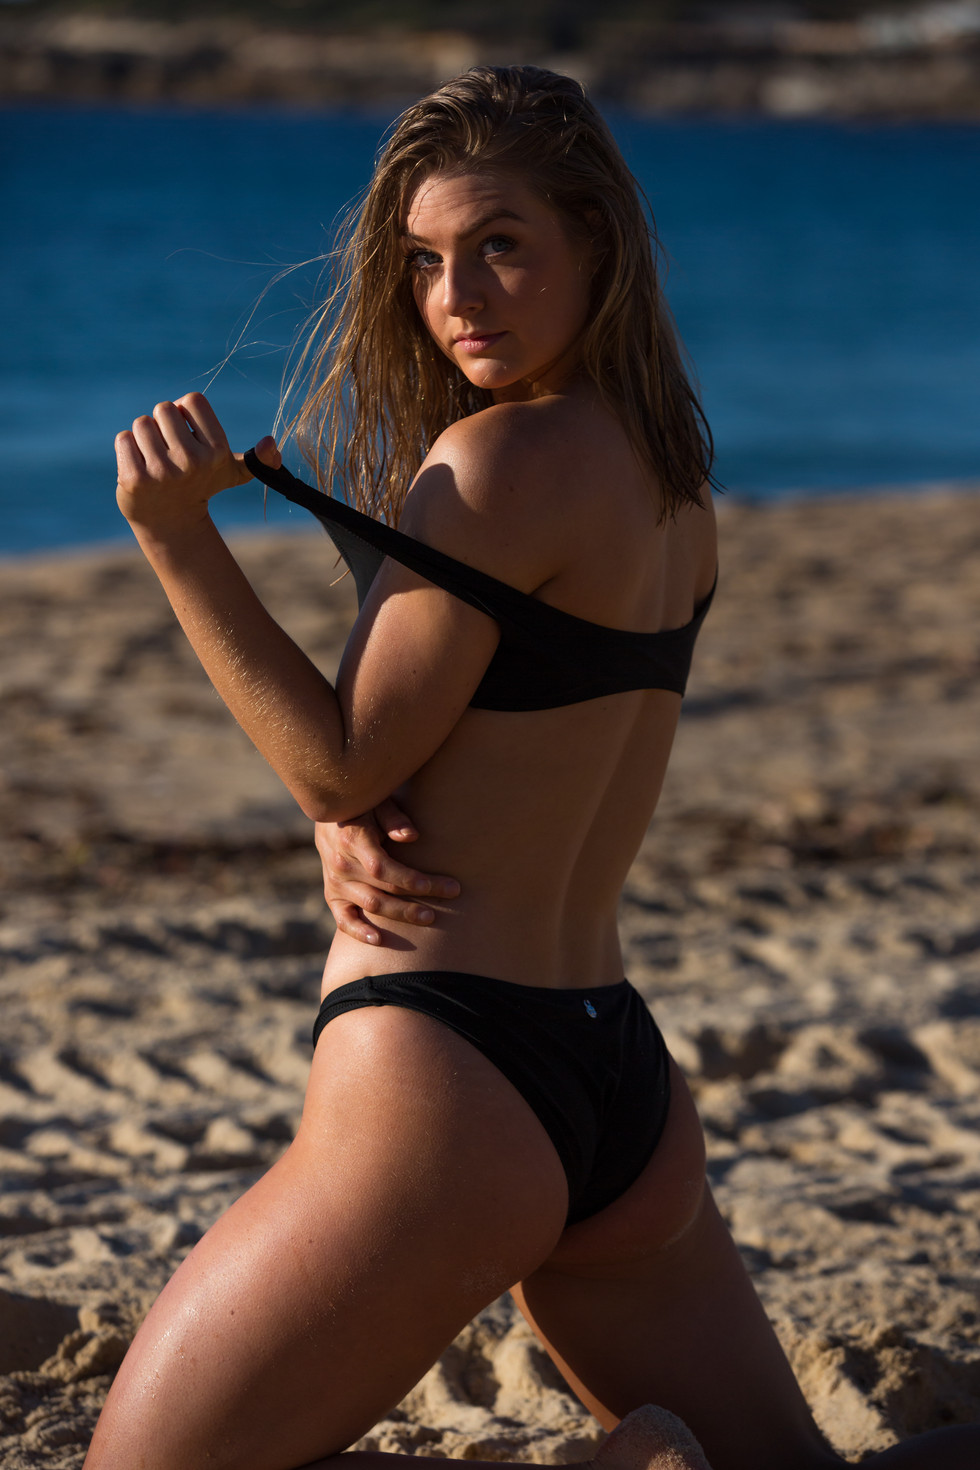 Felicia_by_CoogeePhotography-132761.jpg